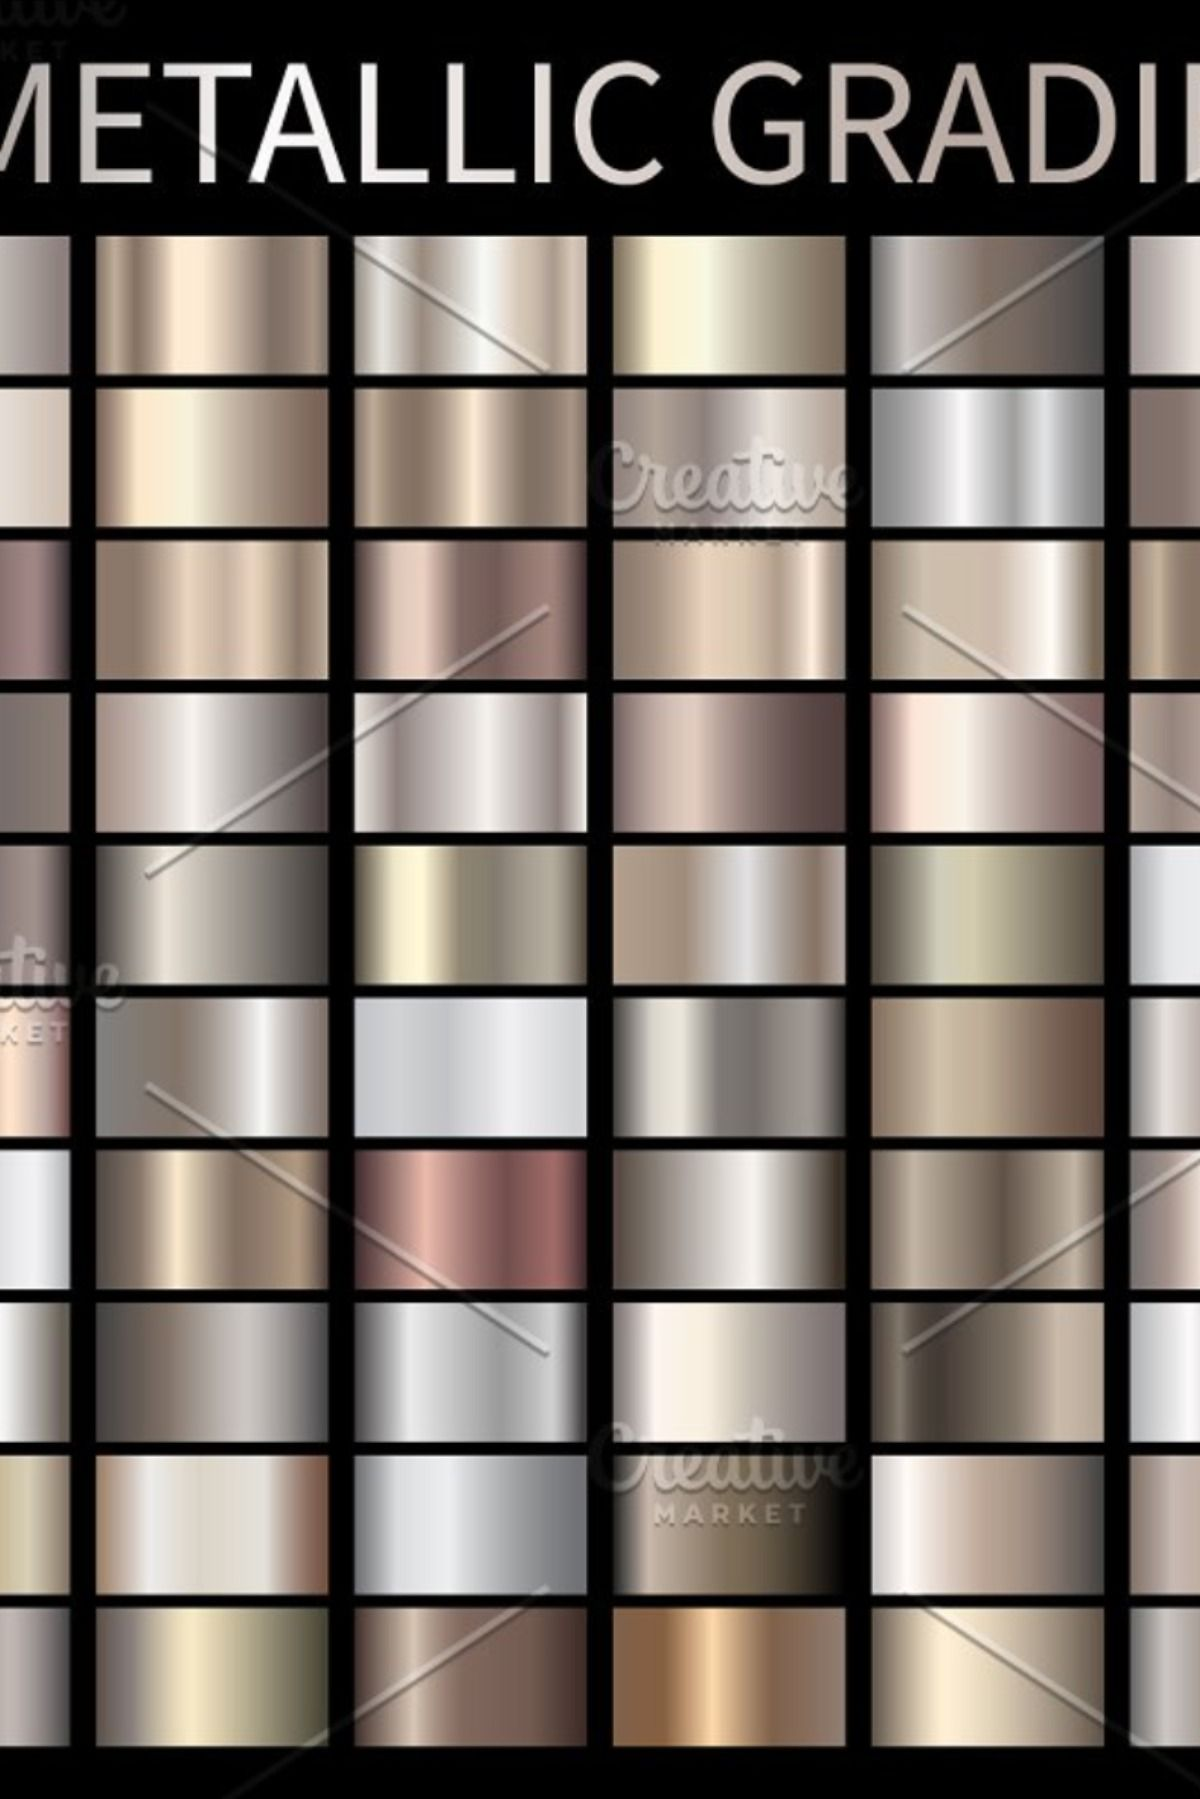 Metallic Bronze gradients swatches for Adobe and